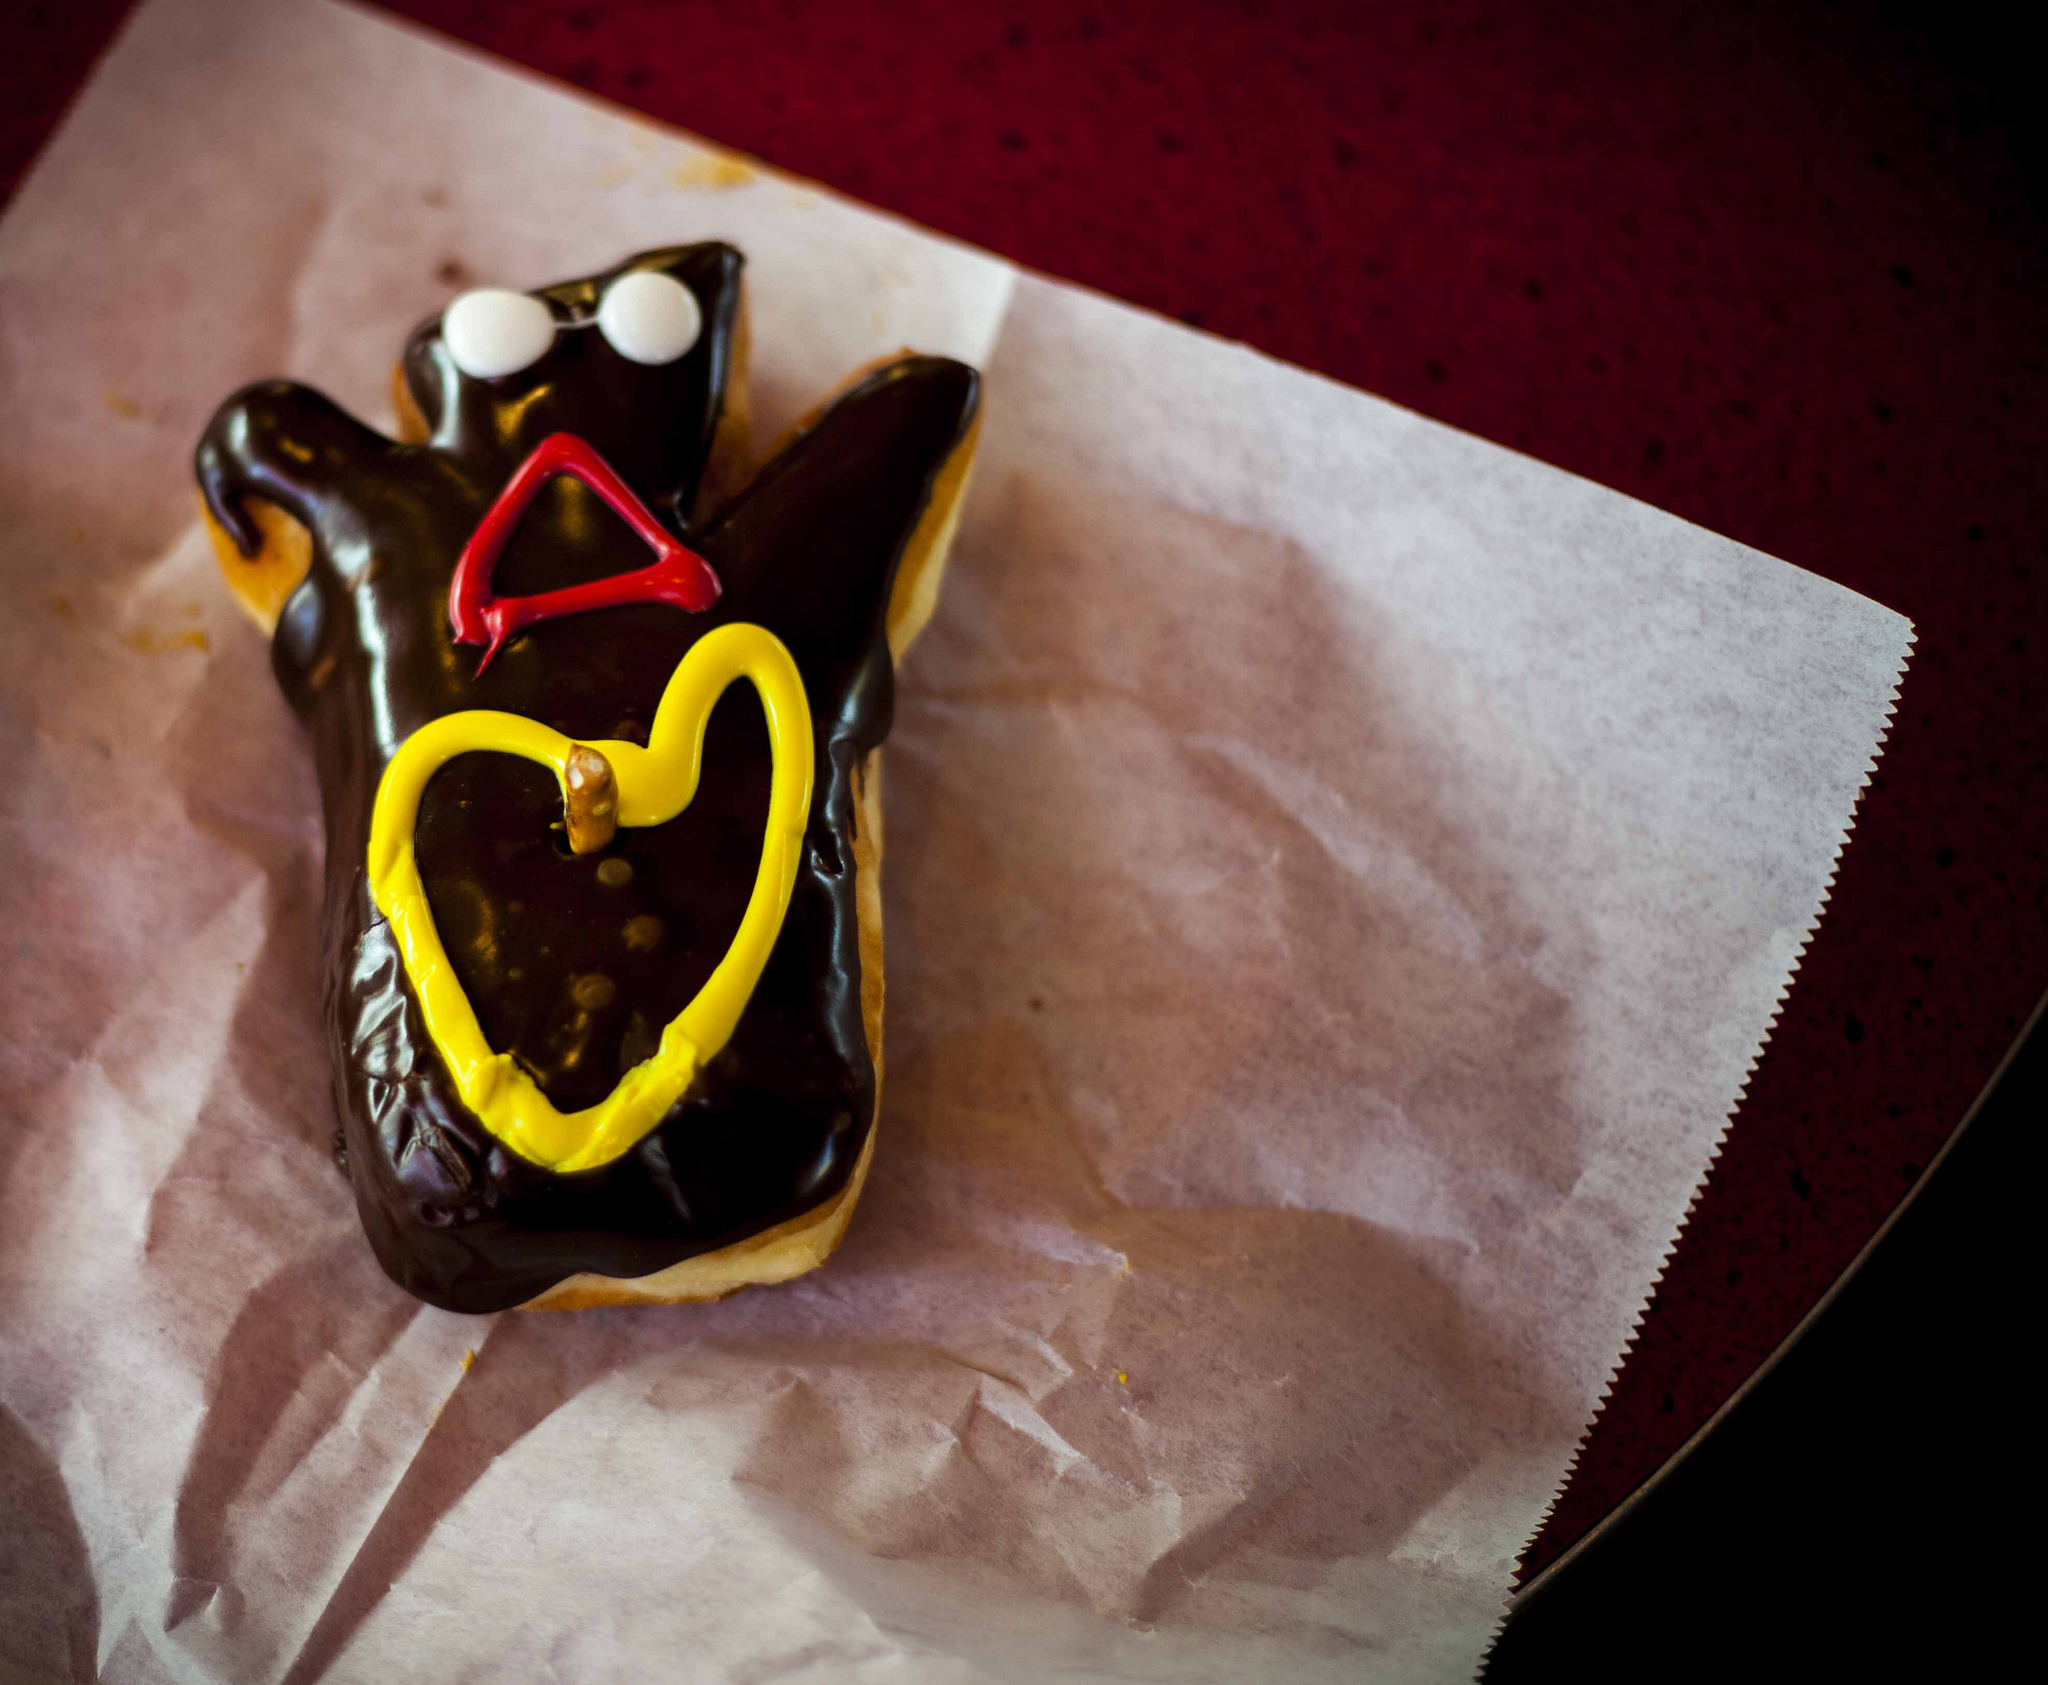 """Voodoo Donuts"" by Jerkaminski via Flickr Creative Commons"